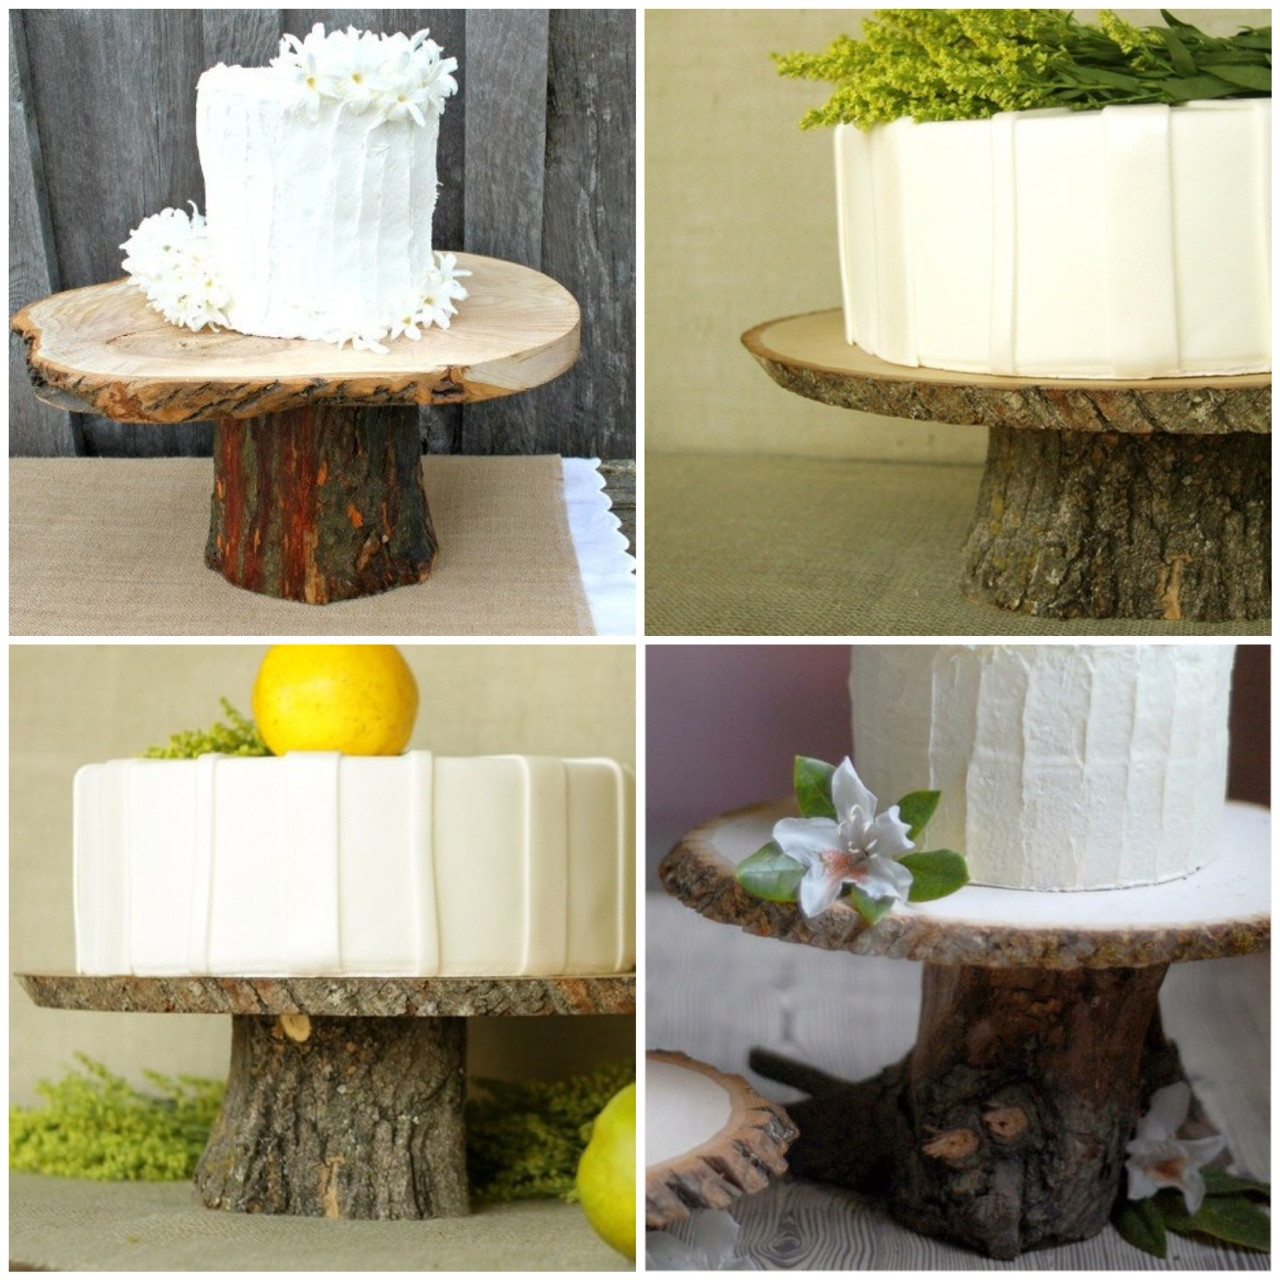 Best ideas about DIY Wood Cake Stand . Save or Pin Rustic Wood Cake Stands a DIY Now.